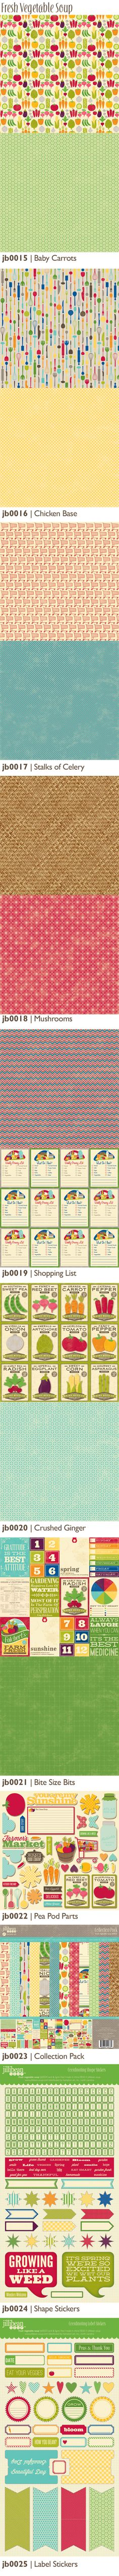 Fresh Vegetable Soup from Jillibean. This line is perfect for so many themes: gardens, cook books, time in the kitchen...or in my kid's play kitchen!